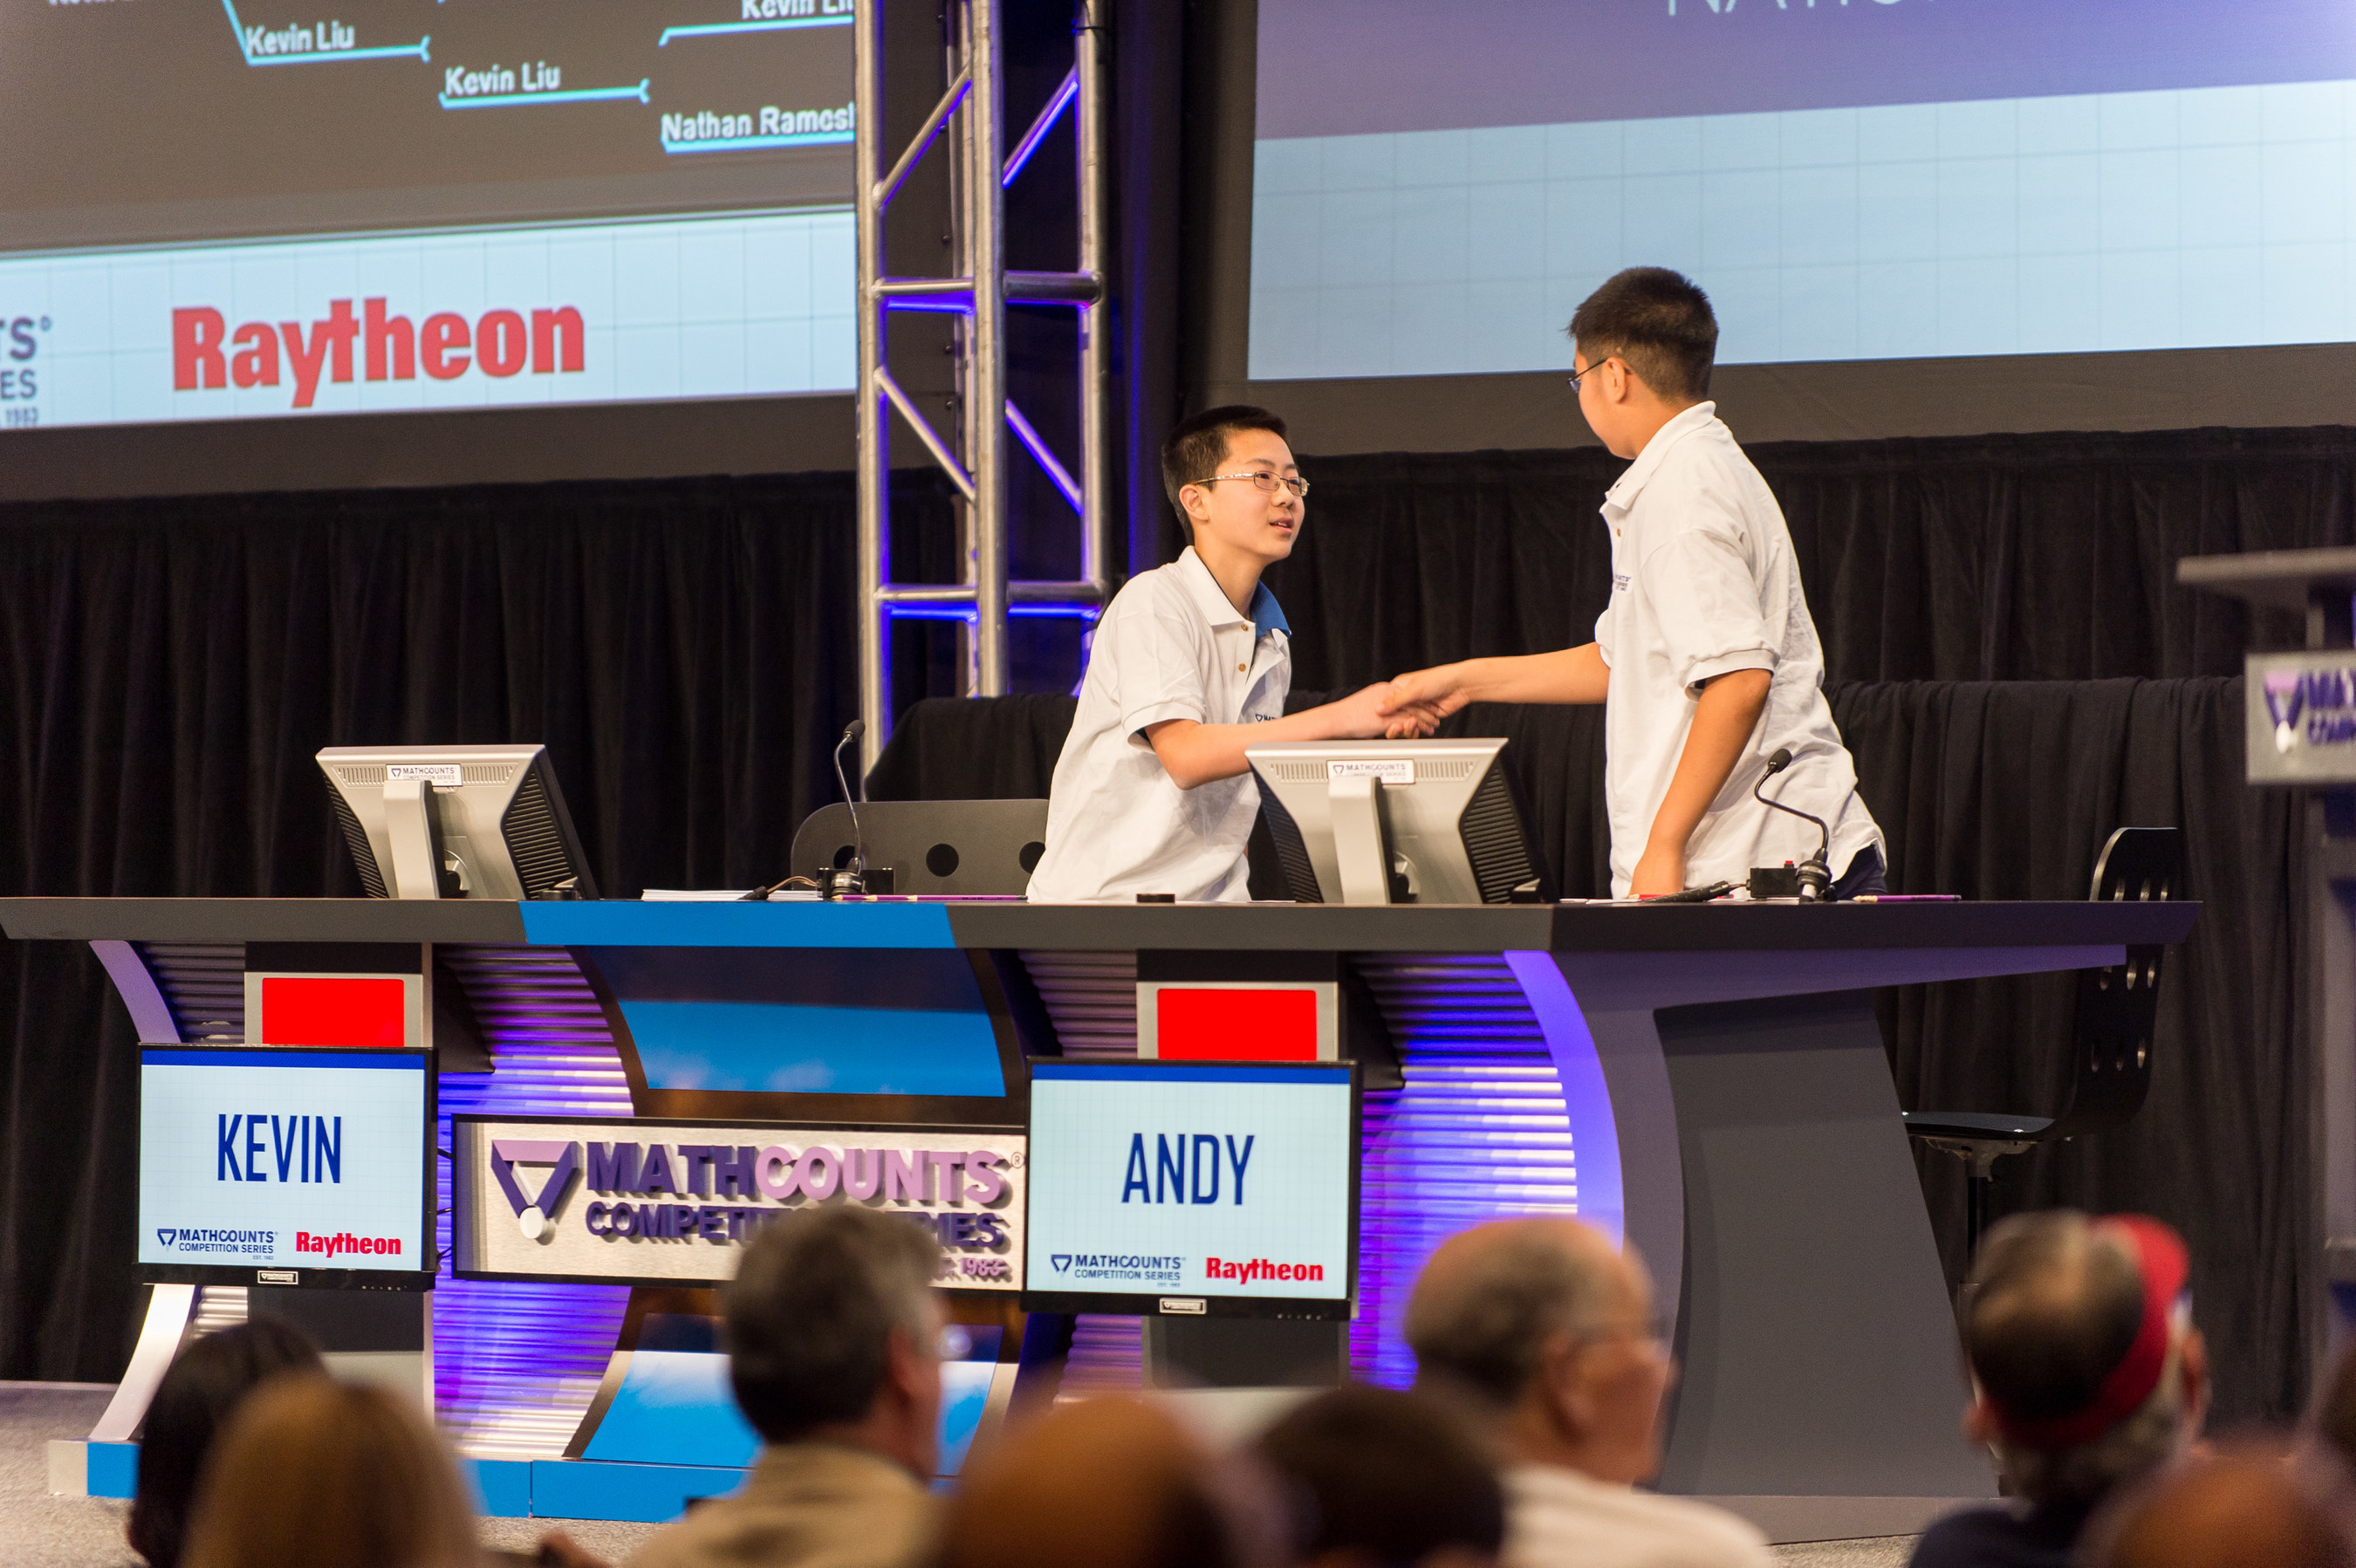 Kevin Liu, left, the 2015 Raytheon MATHCOUNTS National Champion, shakes the hand of runner-up Andy Xu after the final question of the Countdown Round at the Sheraton Boston Hotel. Liu, 14, of Carmel, Indiana, was among 224 U.S. middle-school math students who took part in this year's competition.